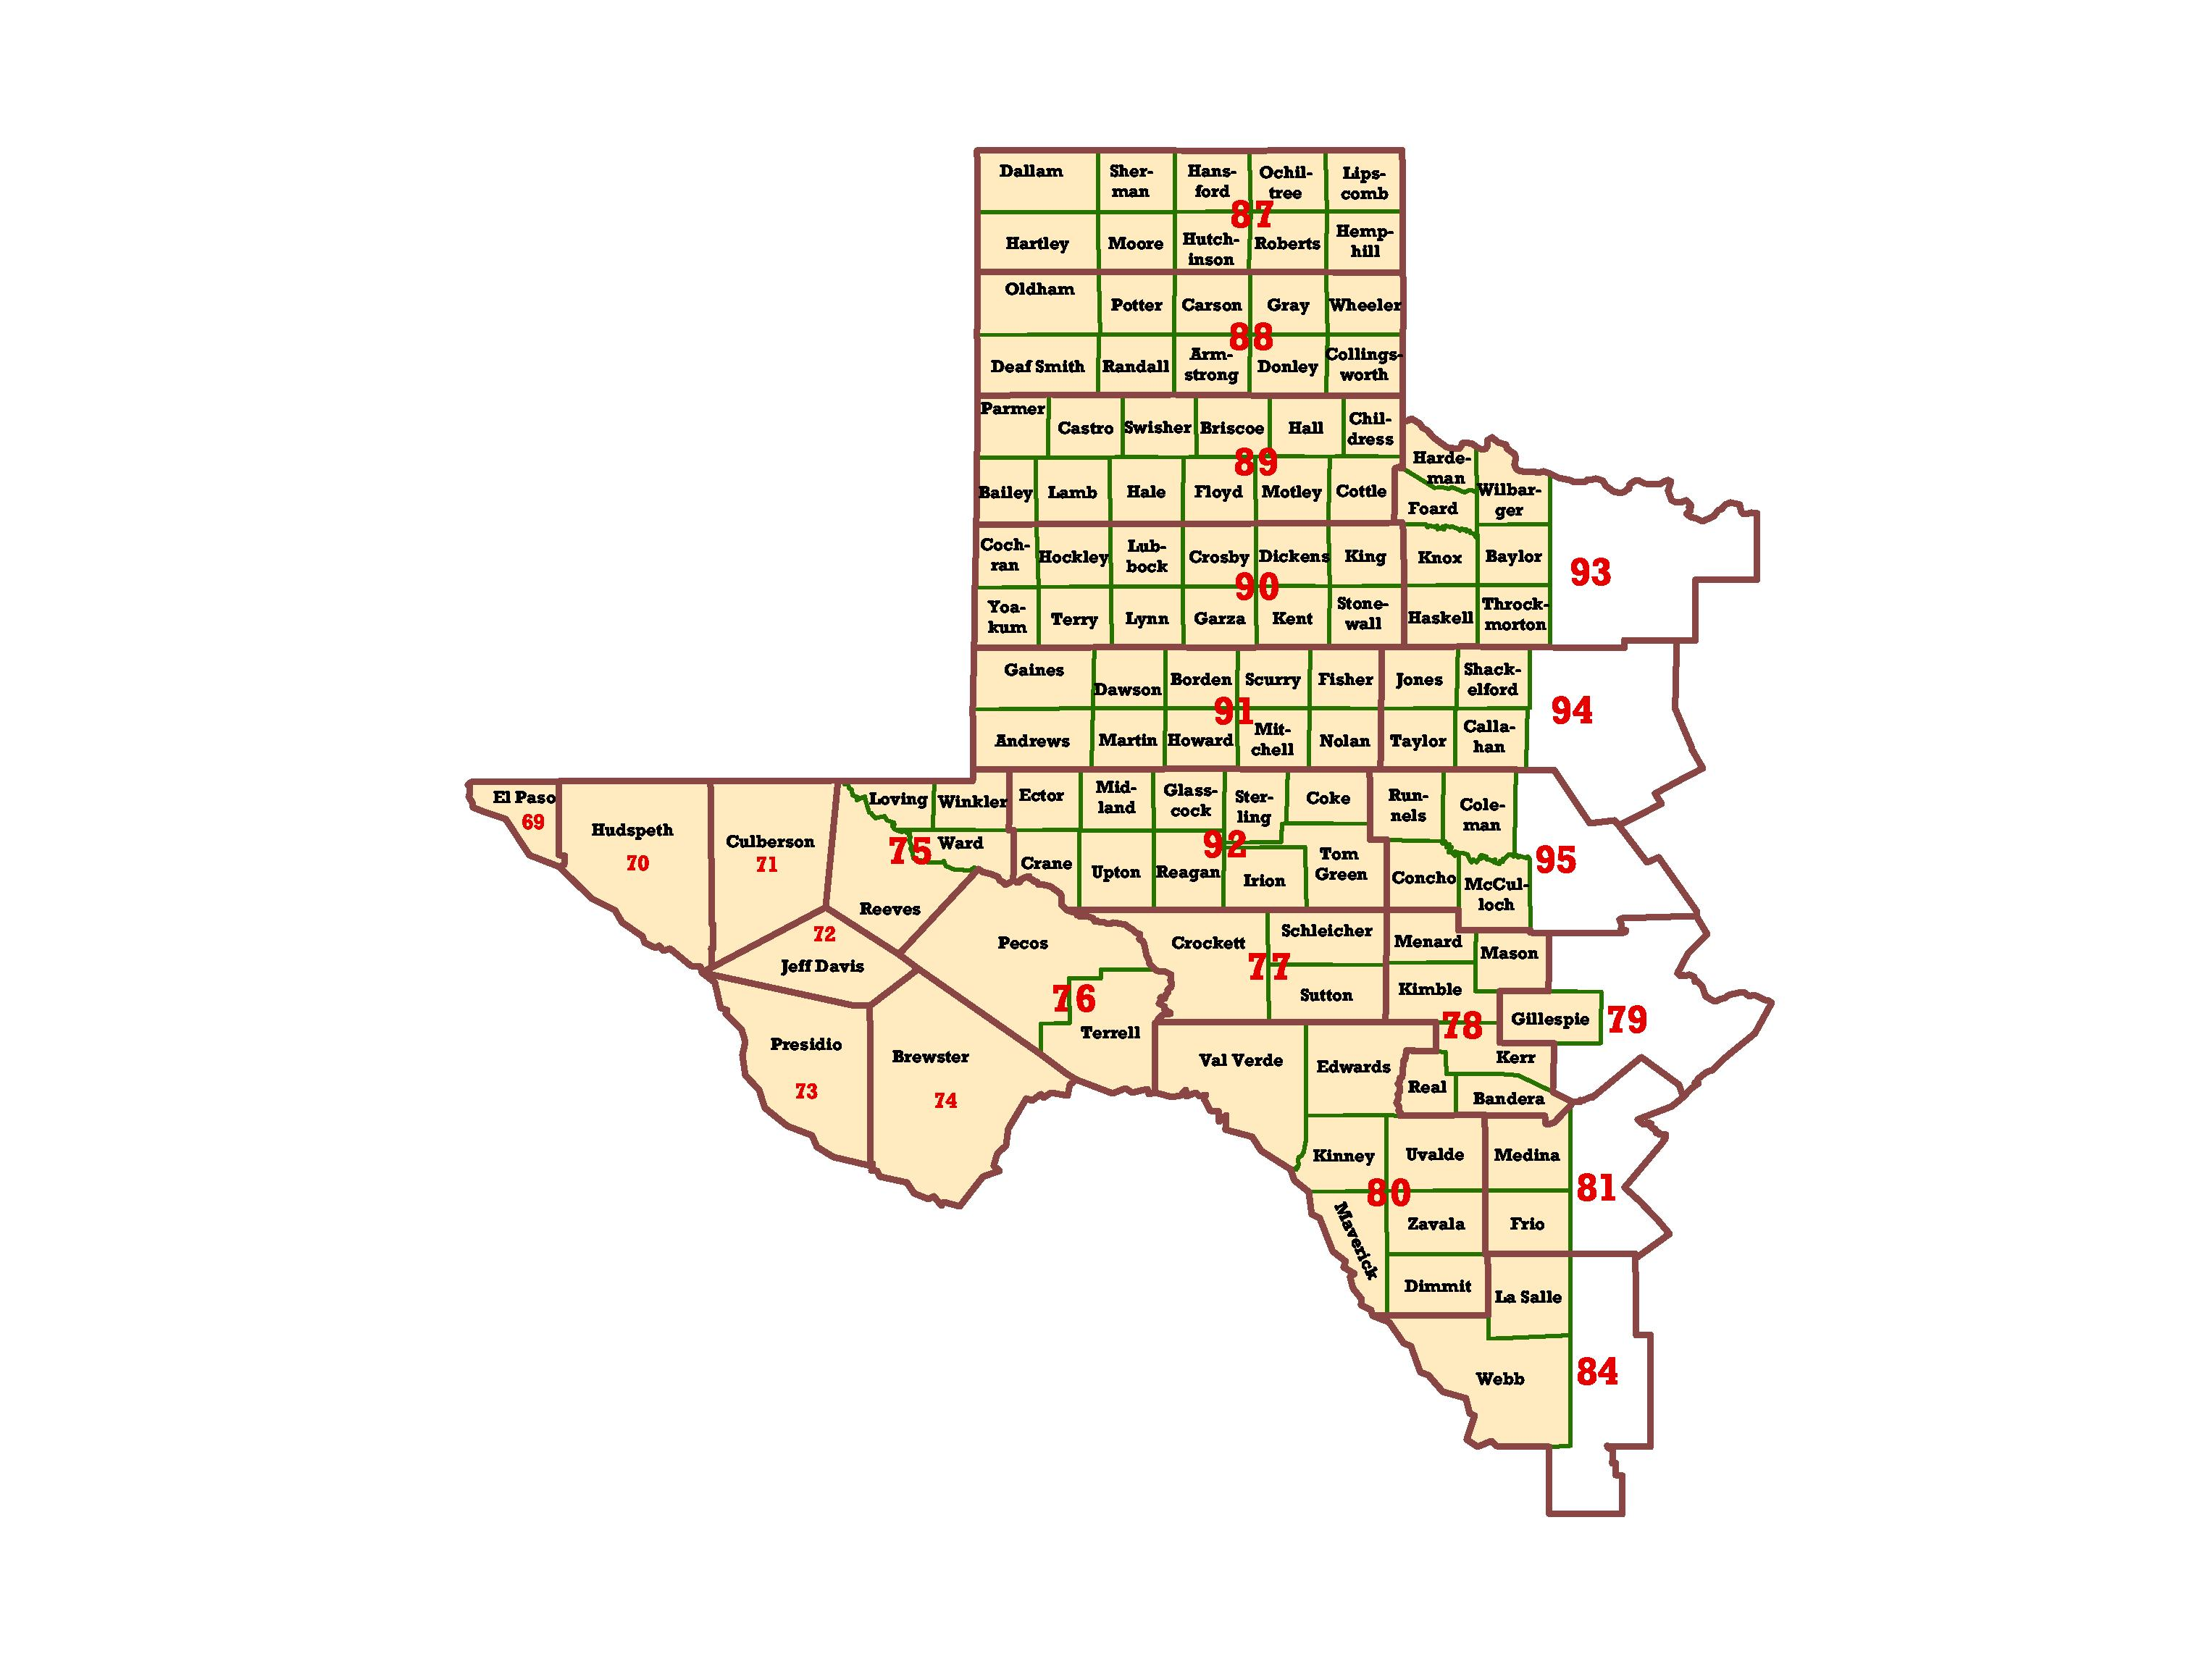 West Texas County Map My Blog - Texas county map with cities